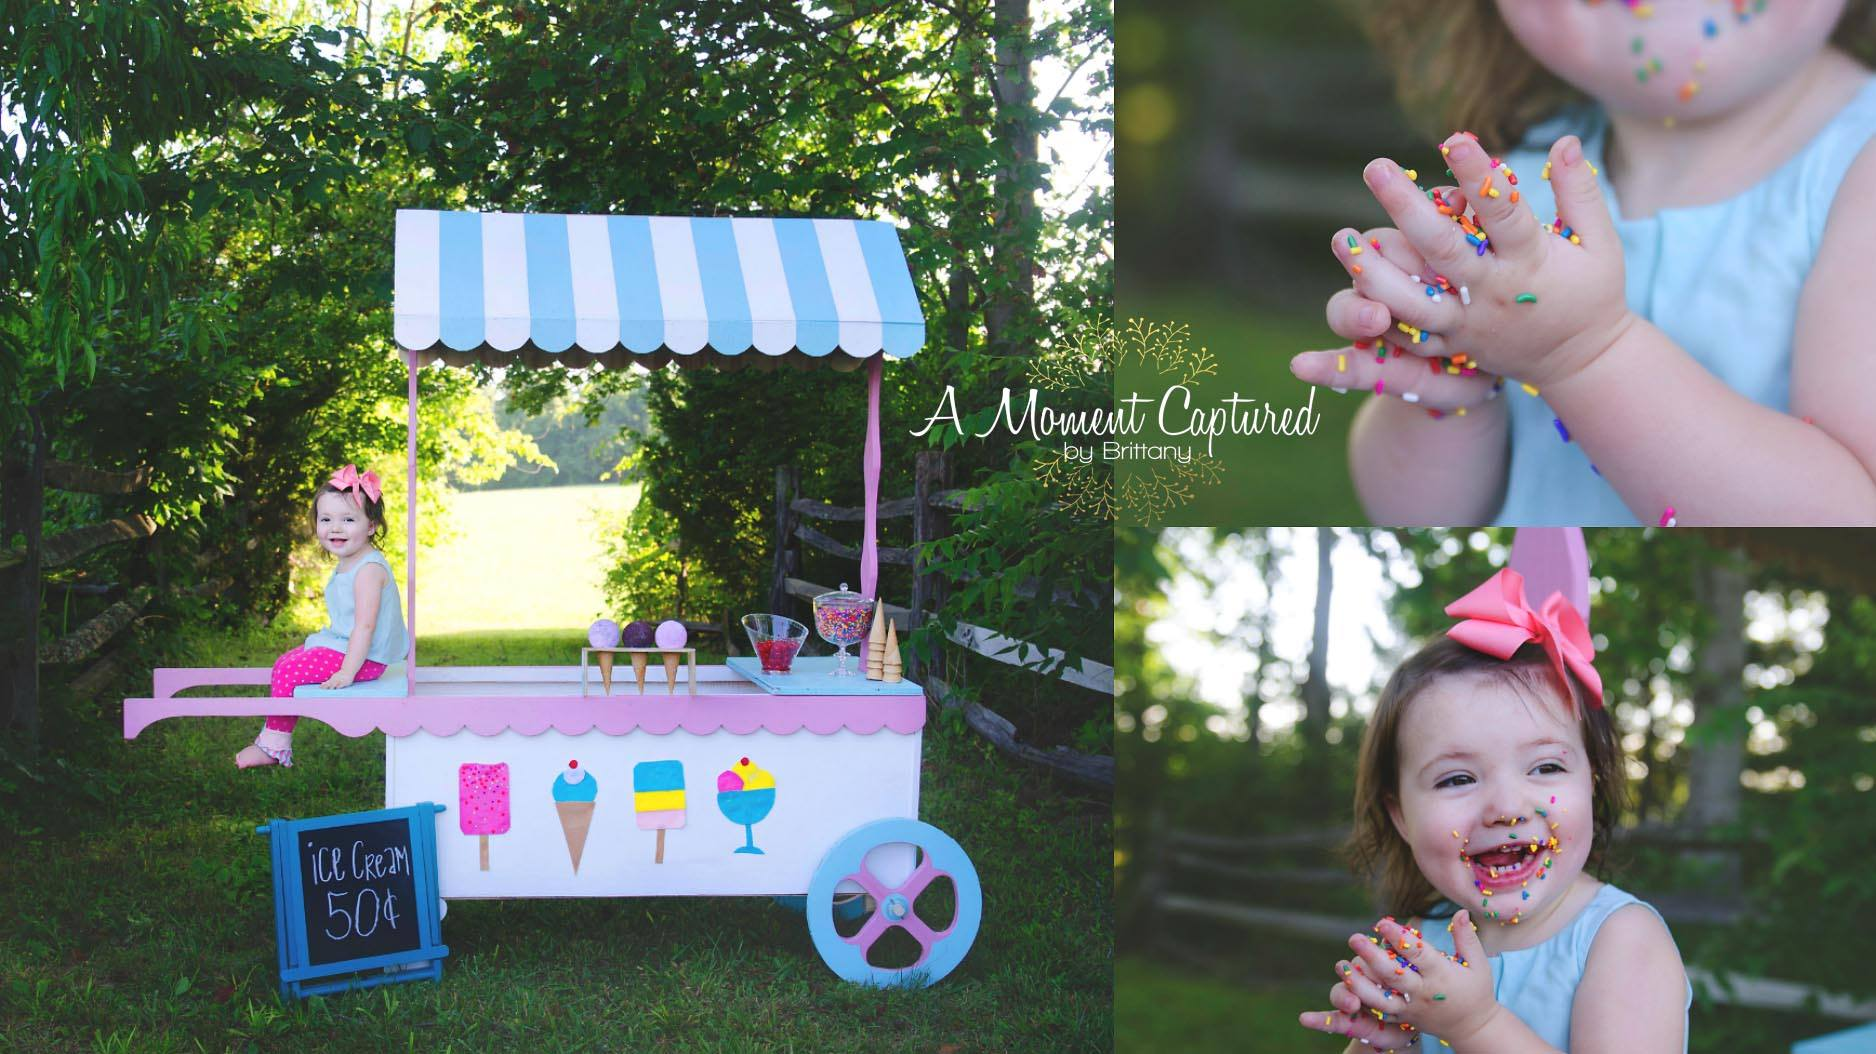 A Moment Captured, by Brittany  Items used: ice cream cart and chalkboard sign